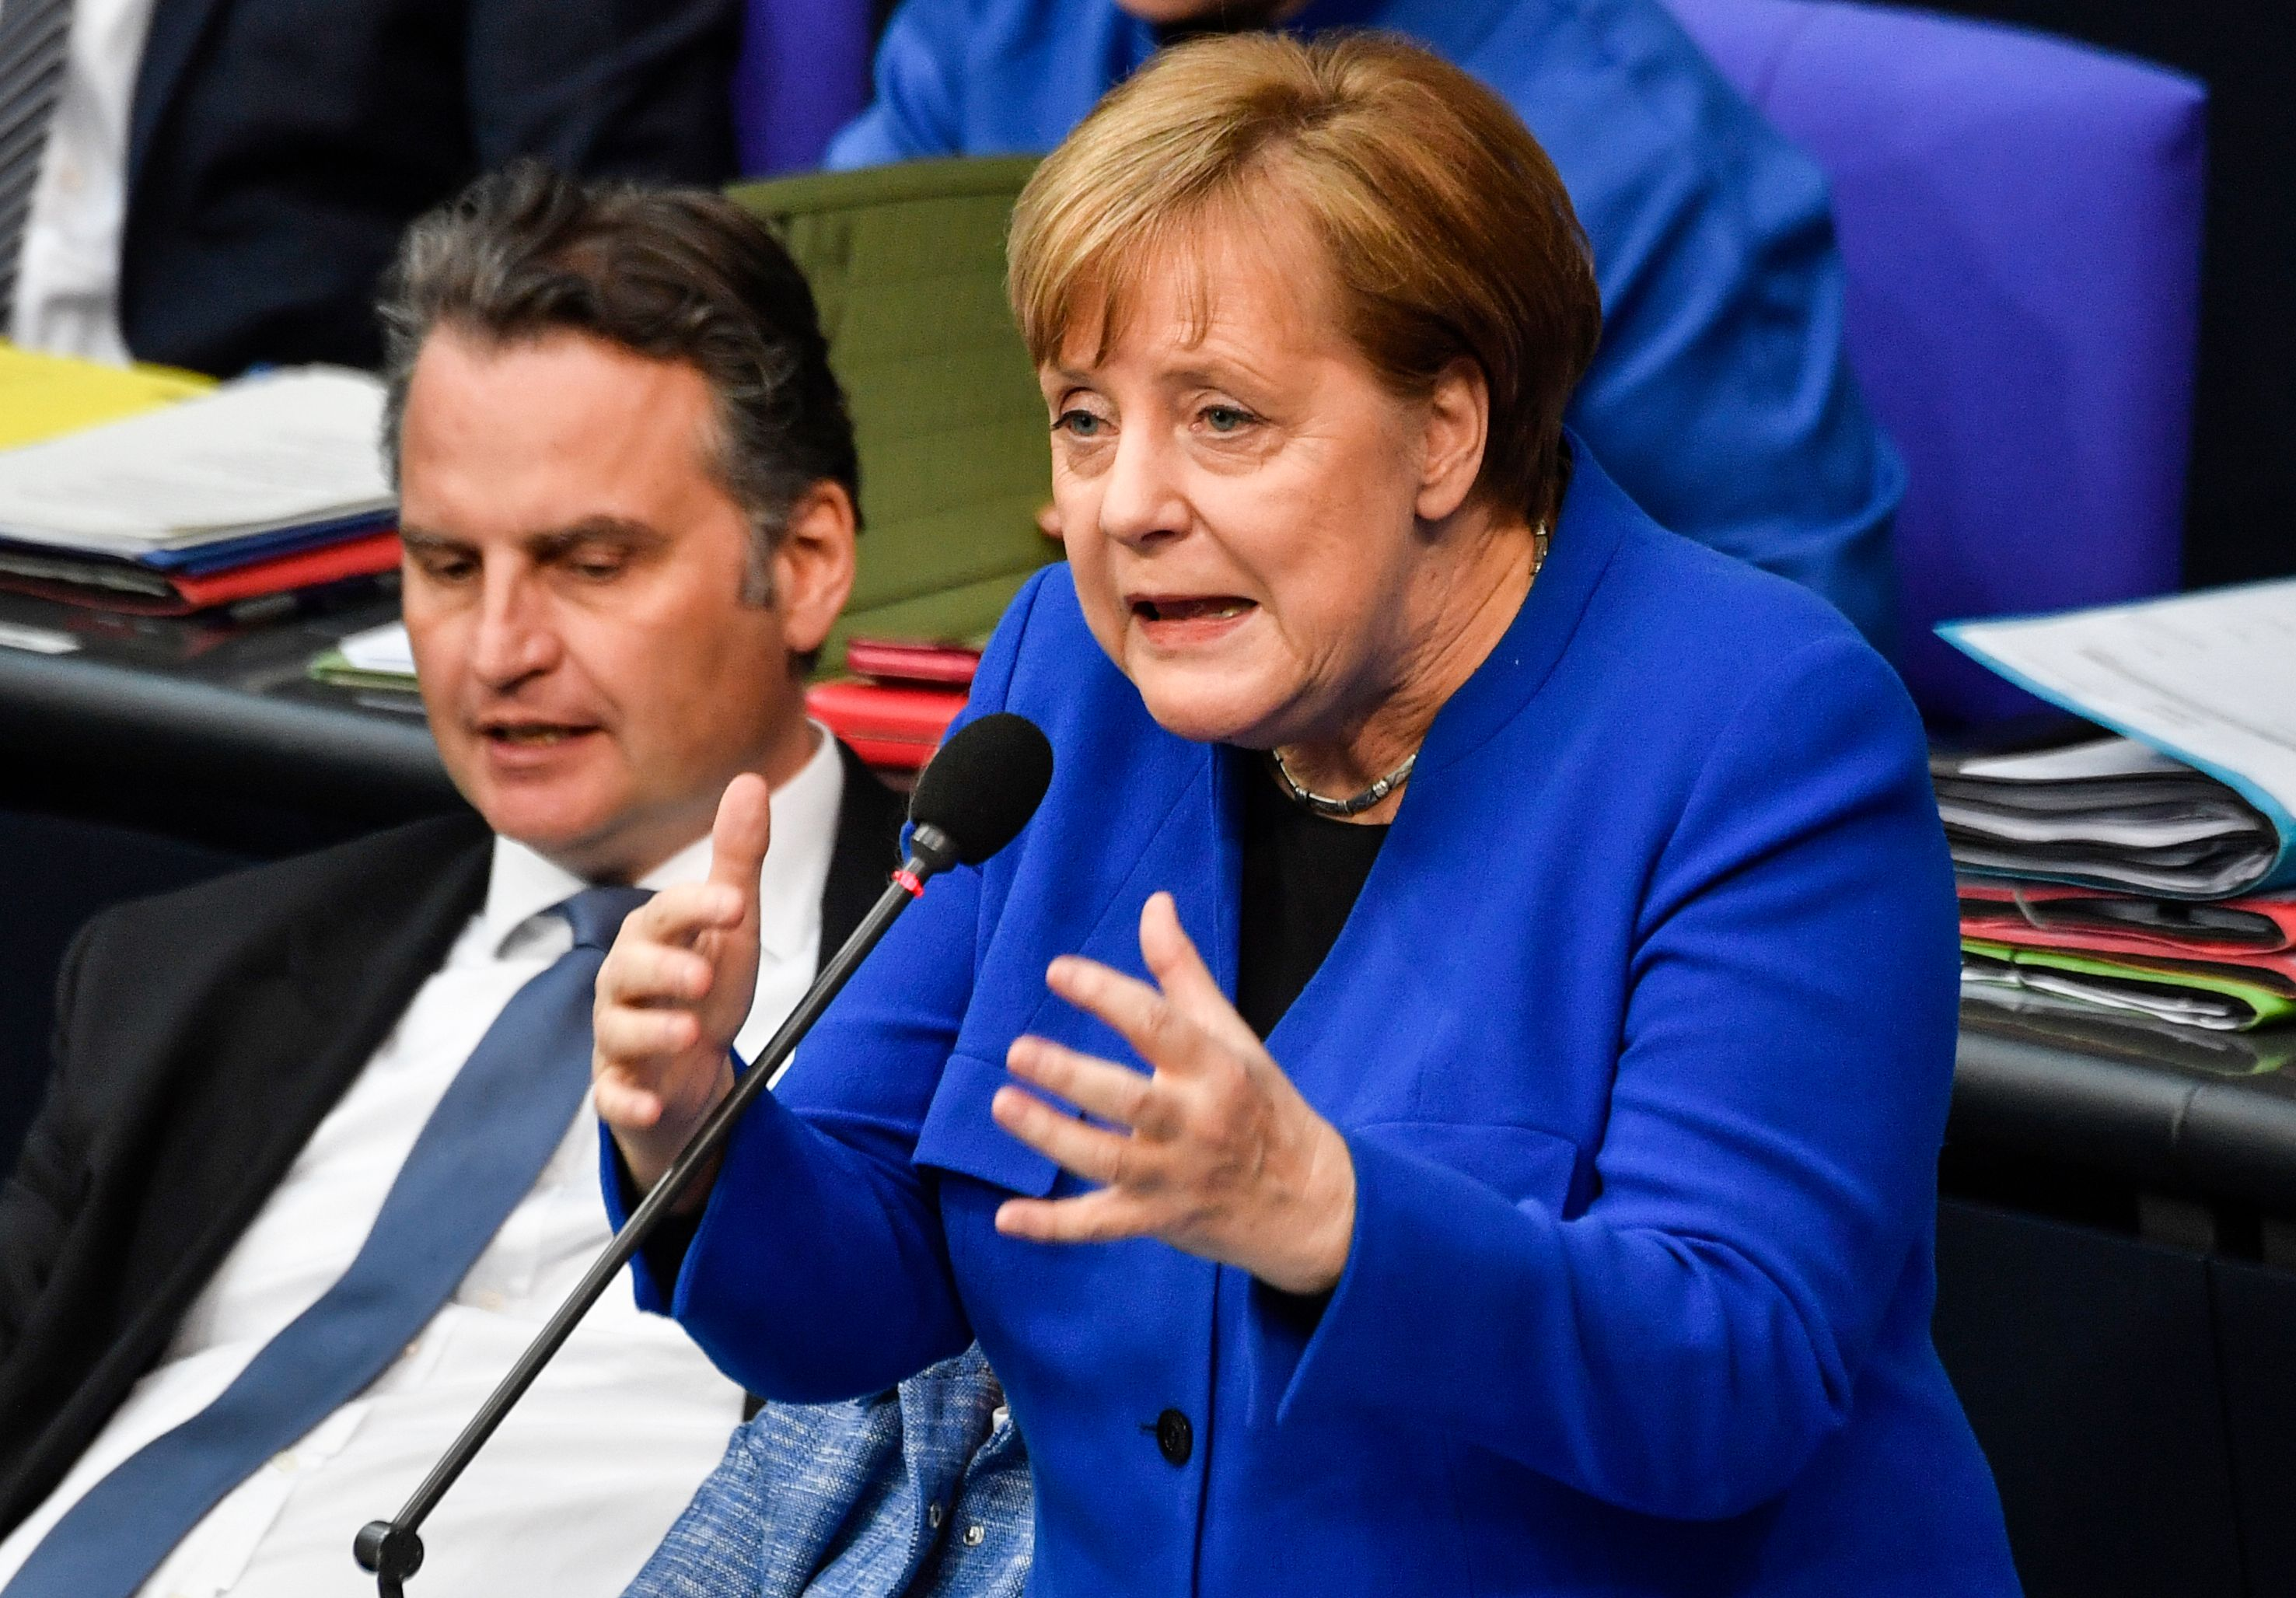 German Chancellor Angela Merkel speaks during question time at the Bundestag, the lower house of Germany's parliament, in Berlin on Wednesday.